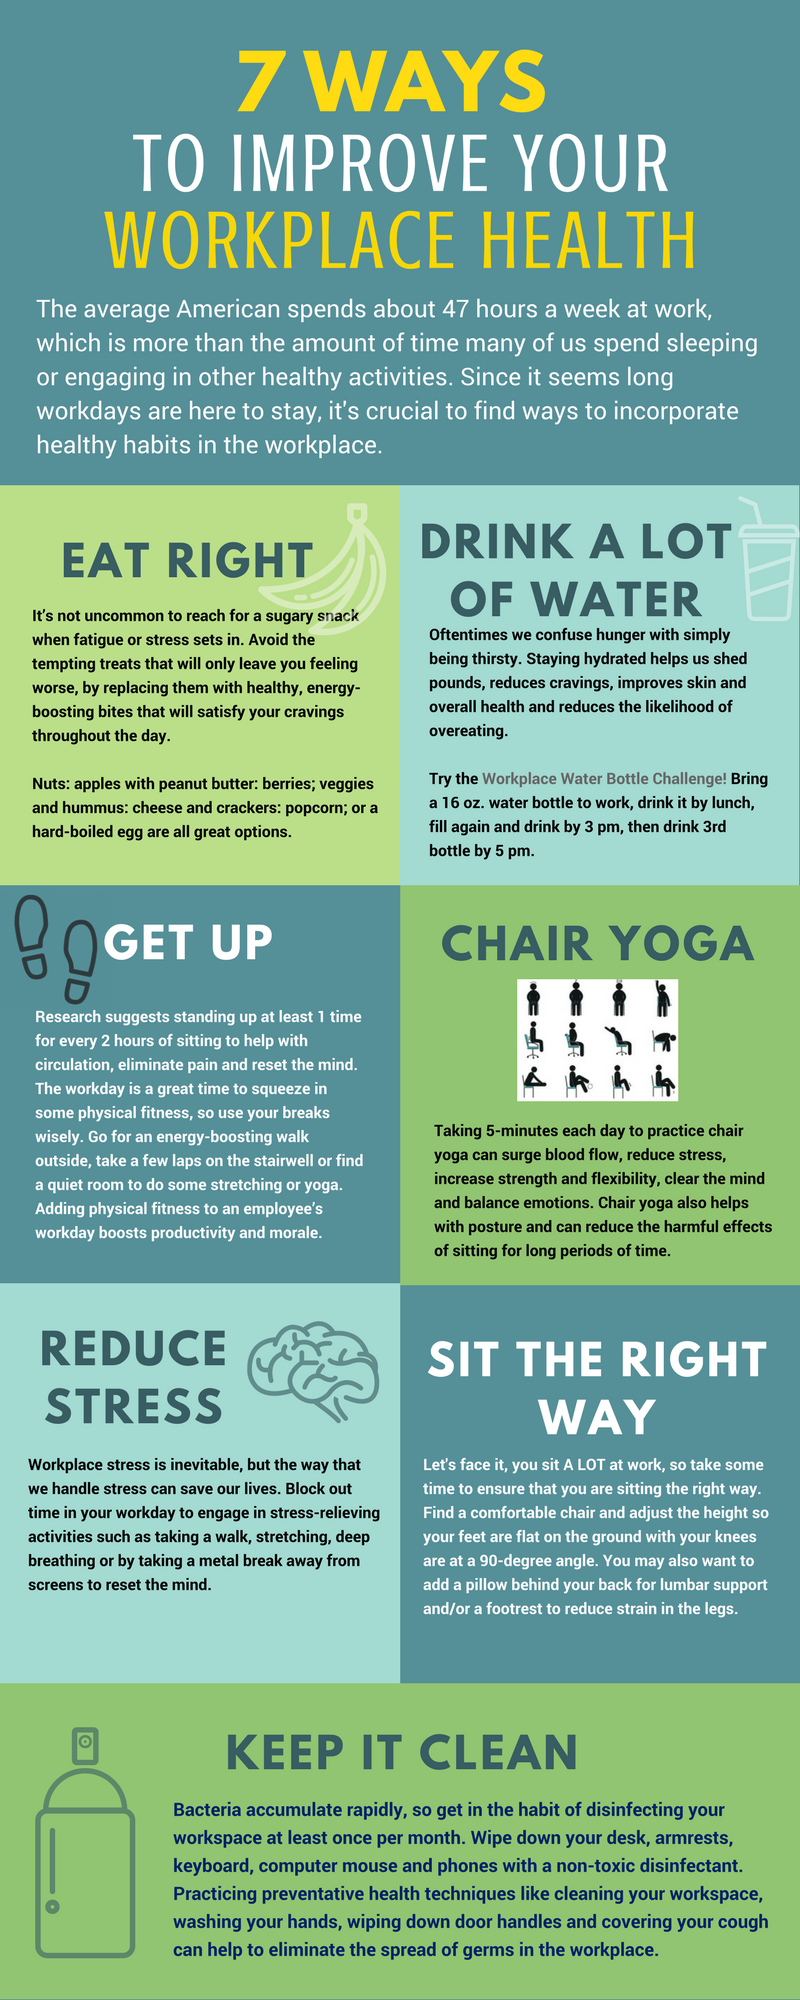 7 Ways to Improve Your Workplace Health infographic